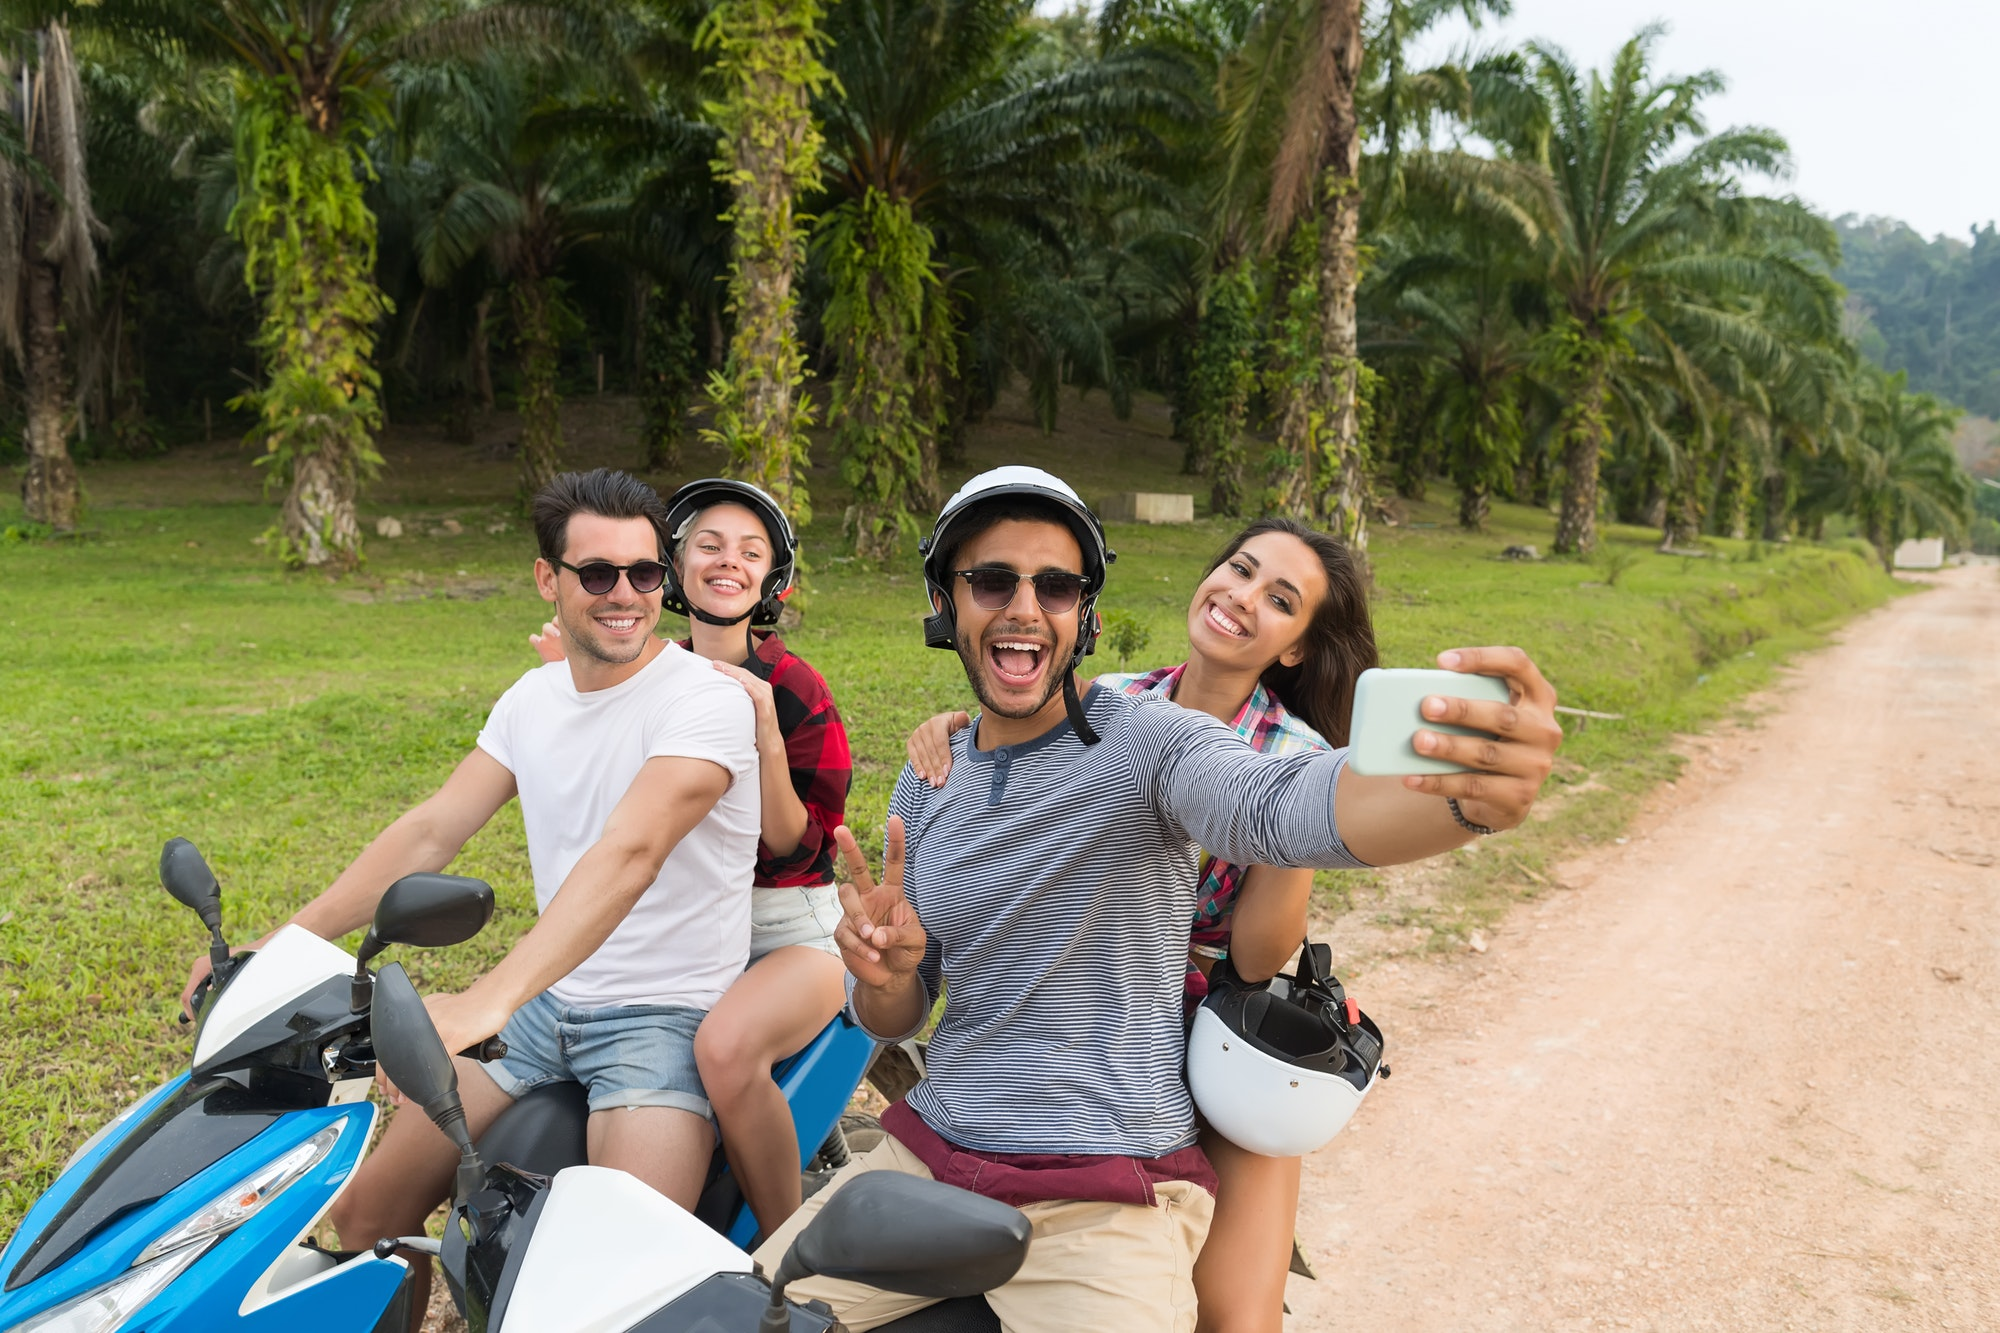 Two Couple Riding Motorbike, Man And Woman Taking Selfie Travel On Bike On Tropical Forest Road